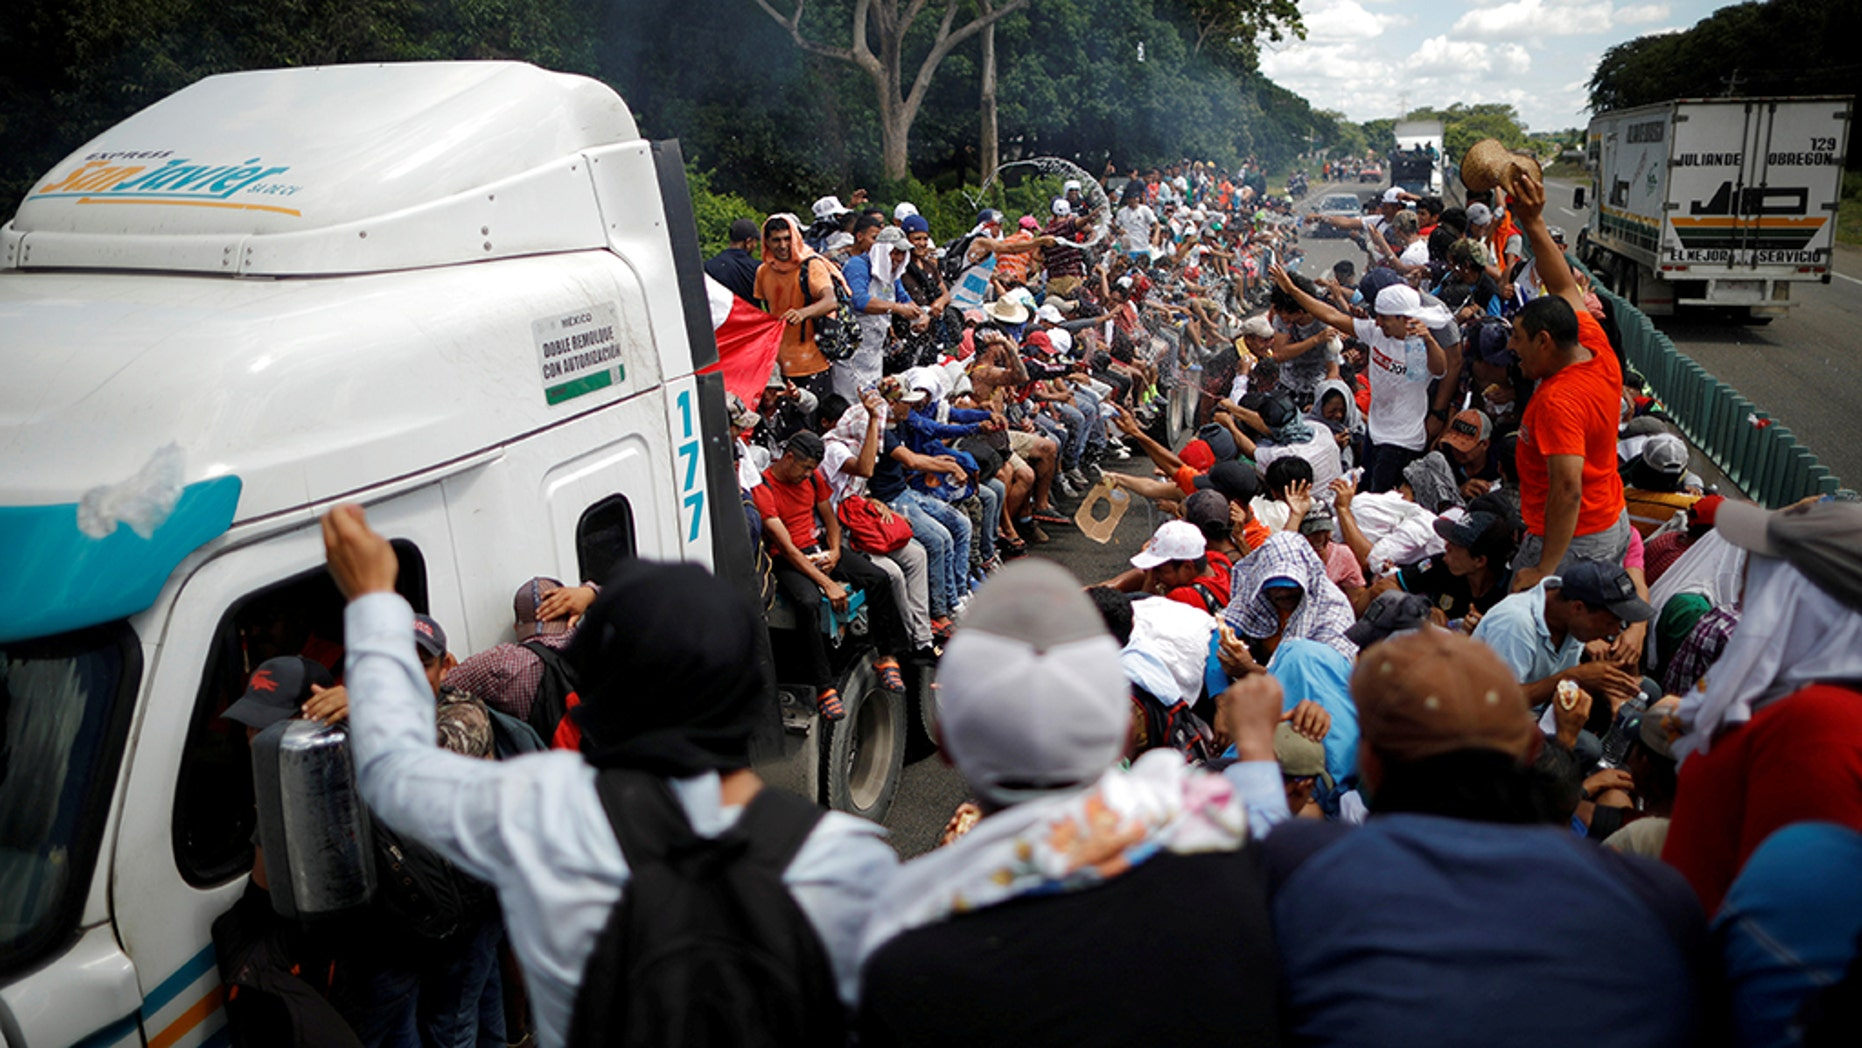 Central American migrants, who are part of a caravan of migrants trying to reach the United States, hitchhike on a truck along the highway as they continued their journey in Tapachula, Mexico, earlier this week.